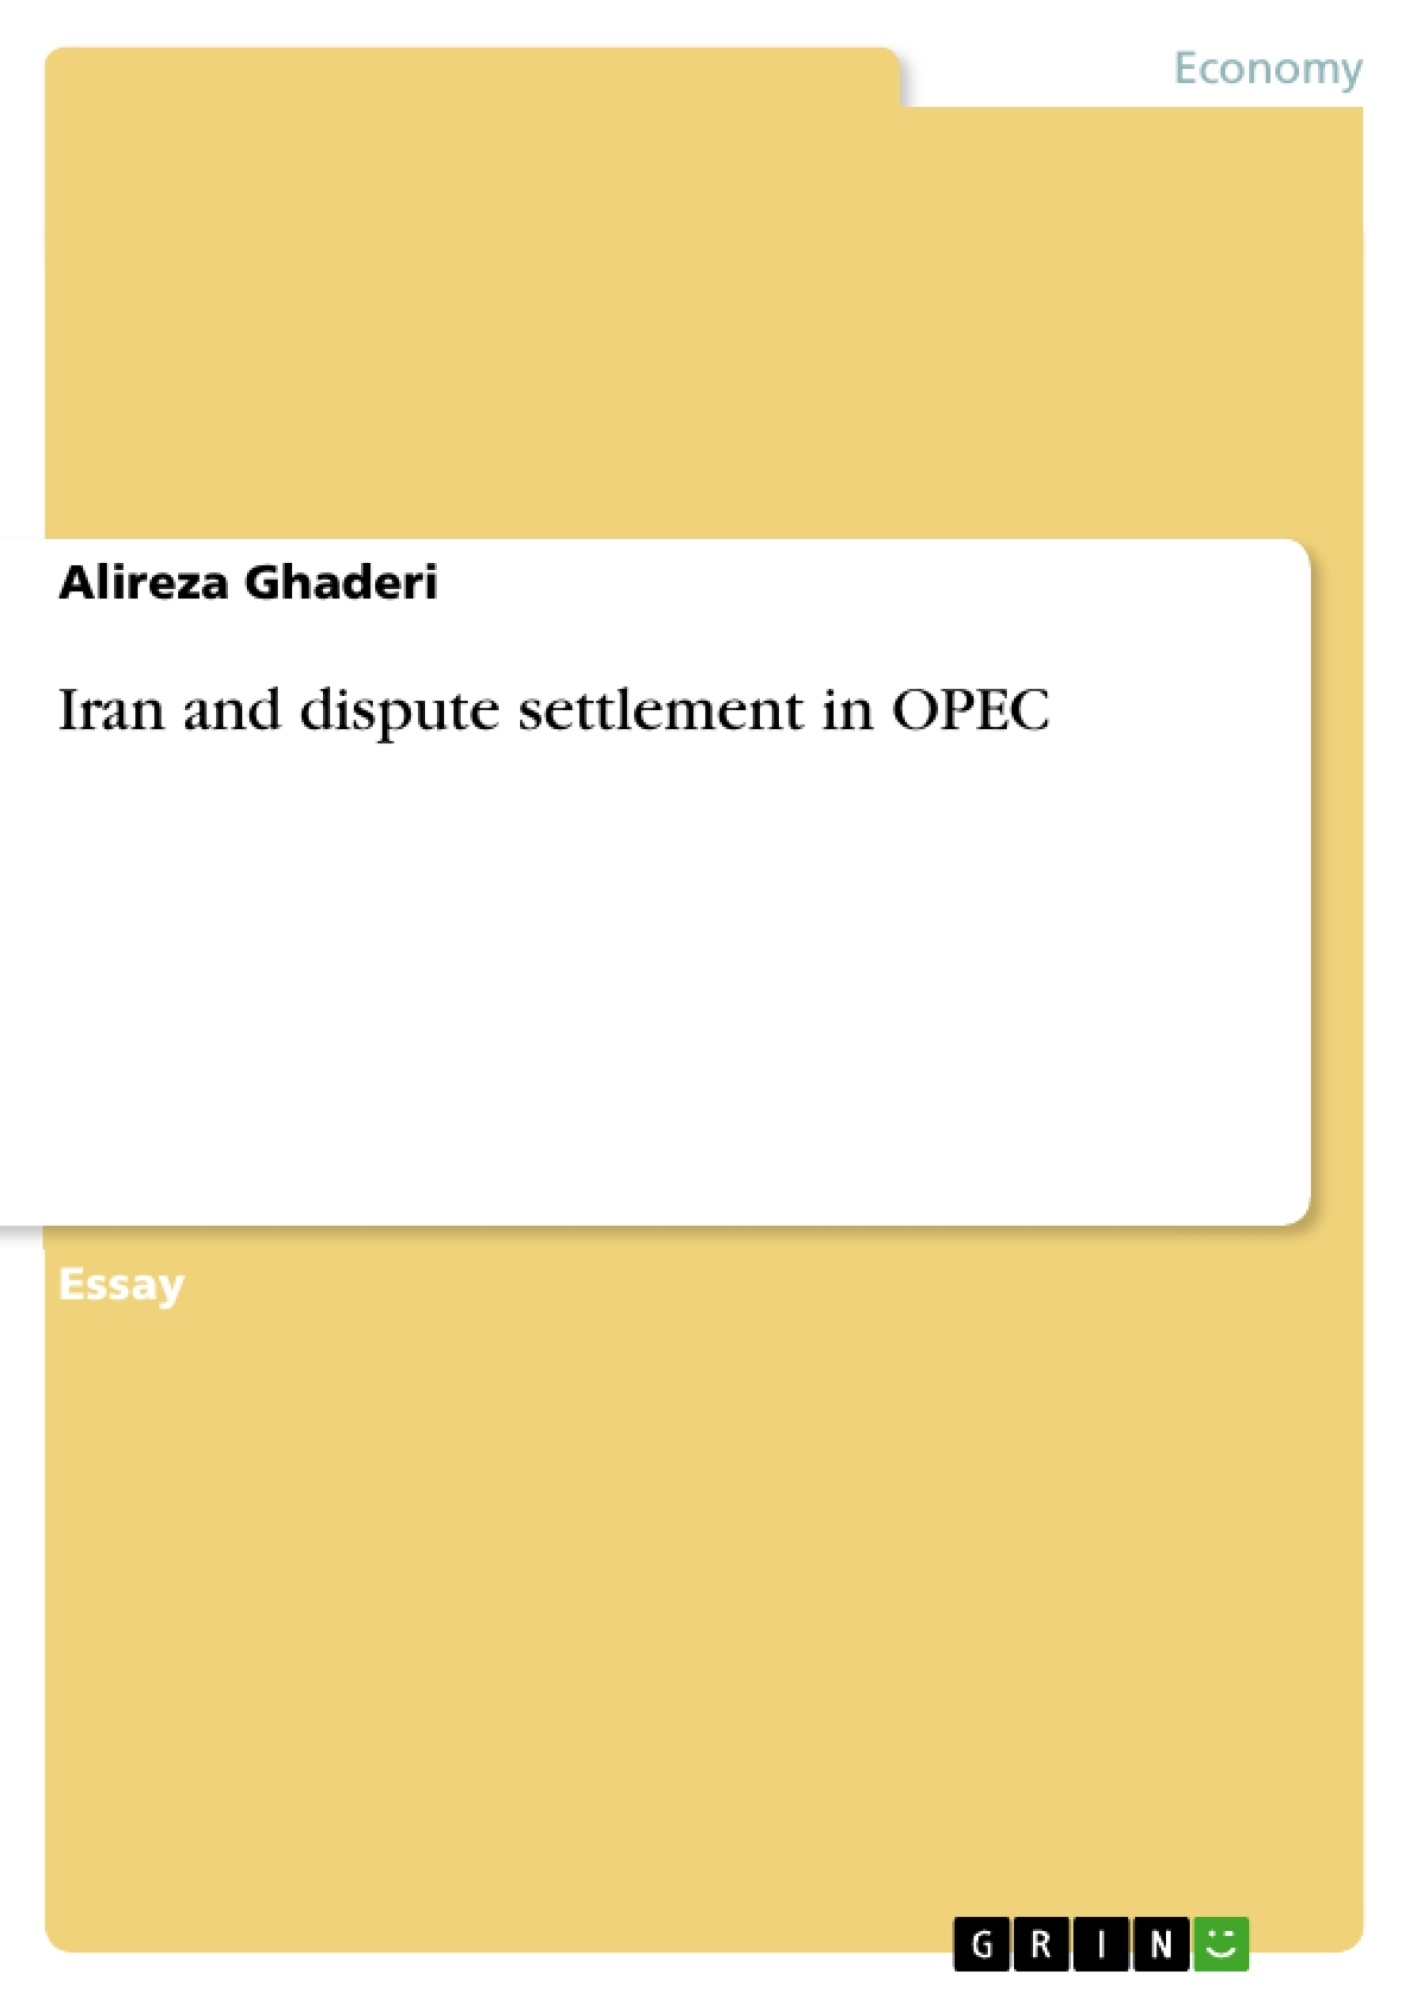 Title: Iran and dispute settlement in OPEC